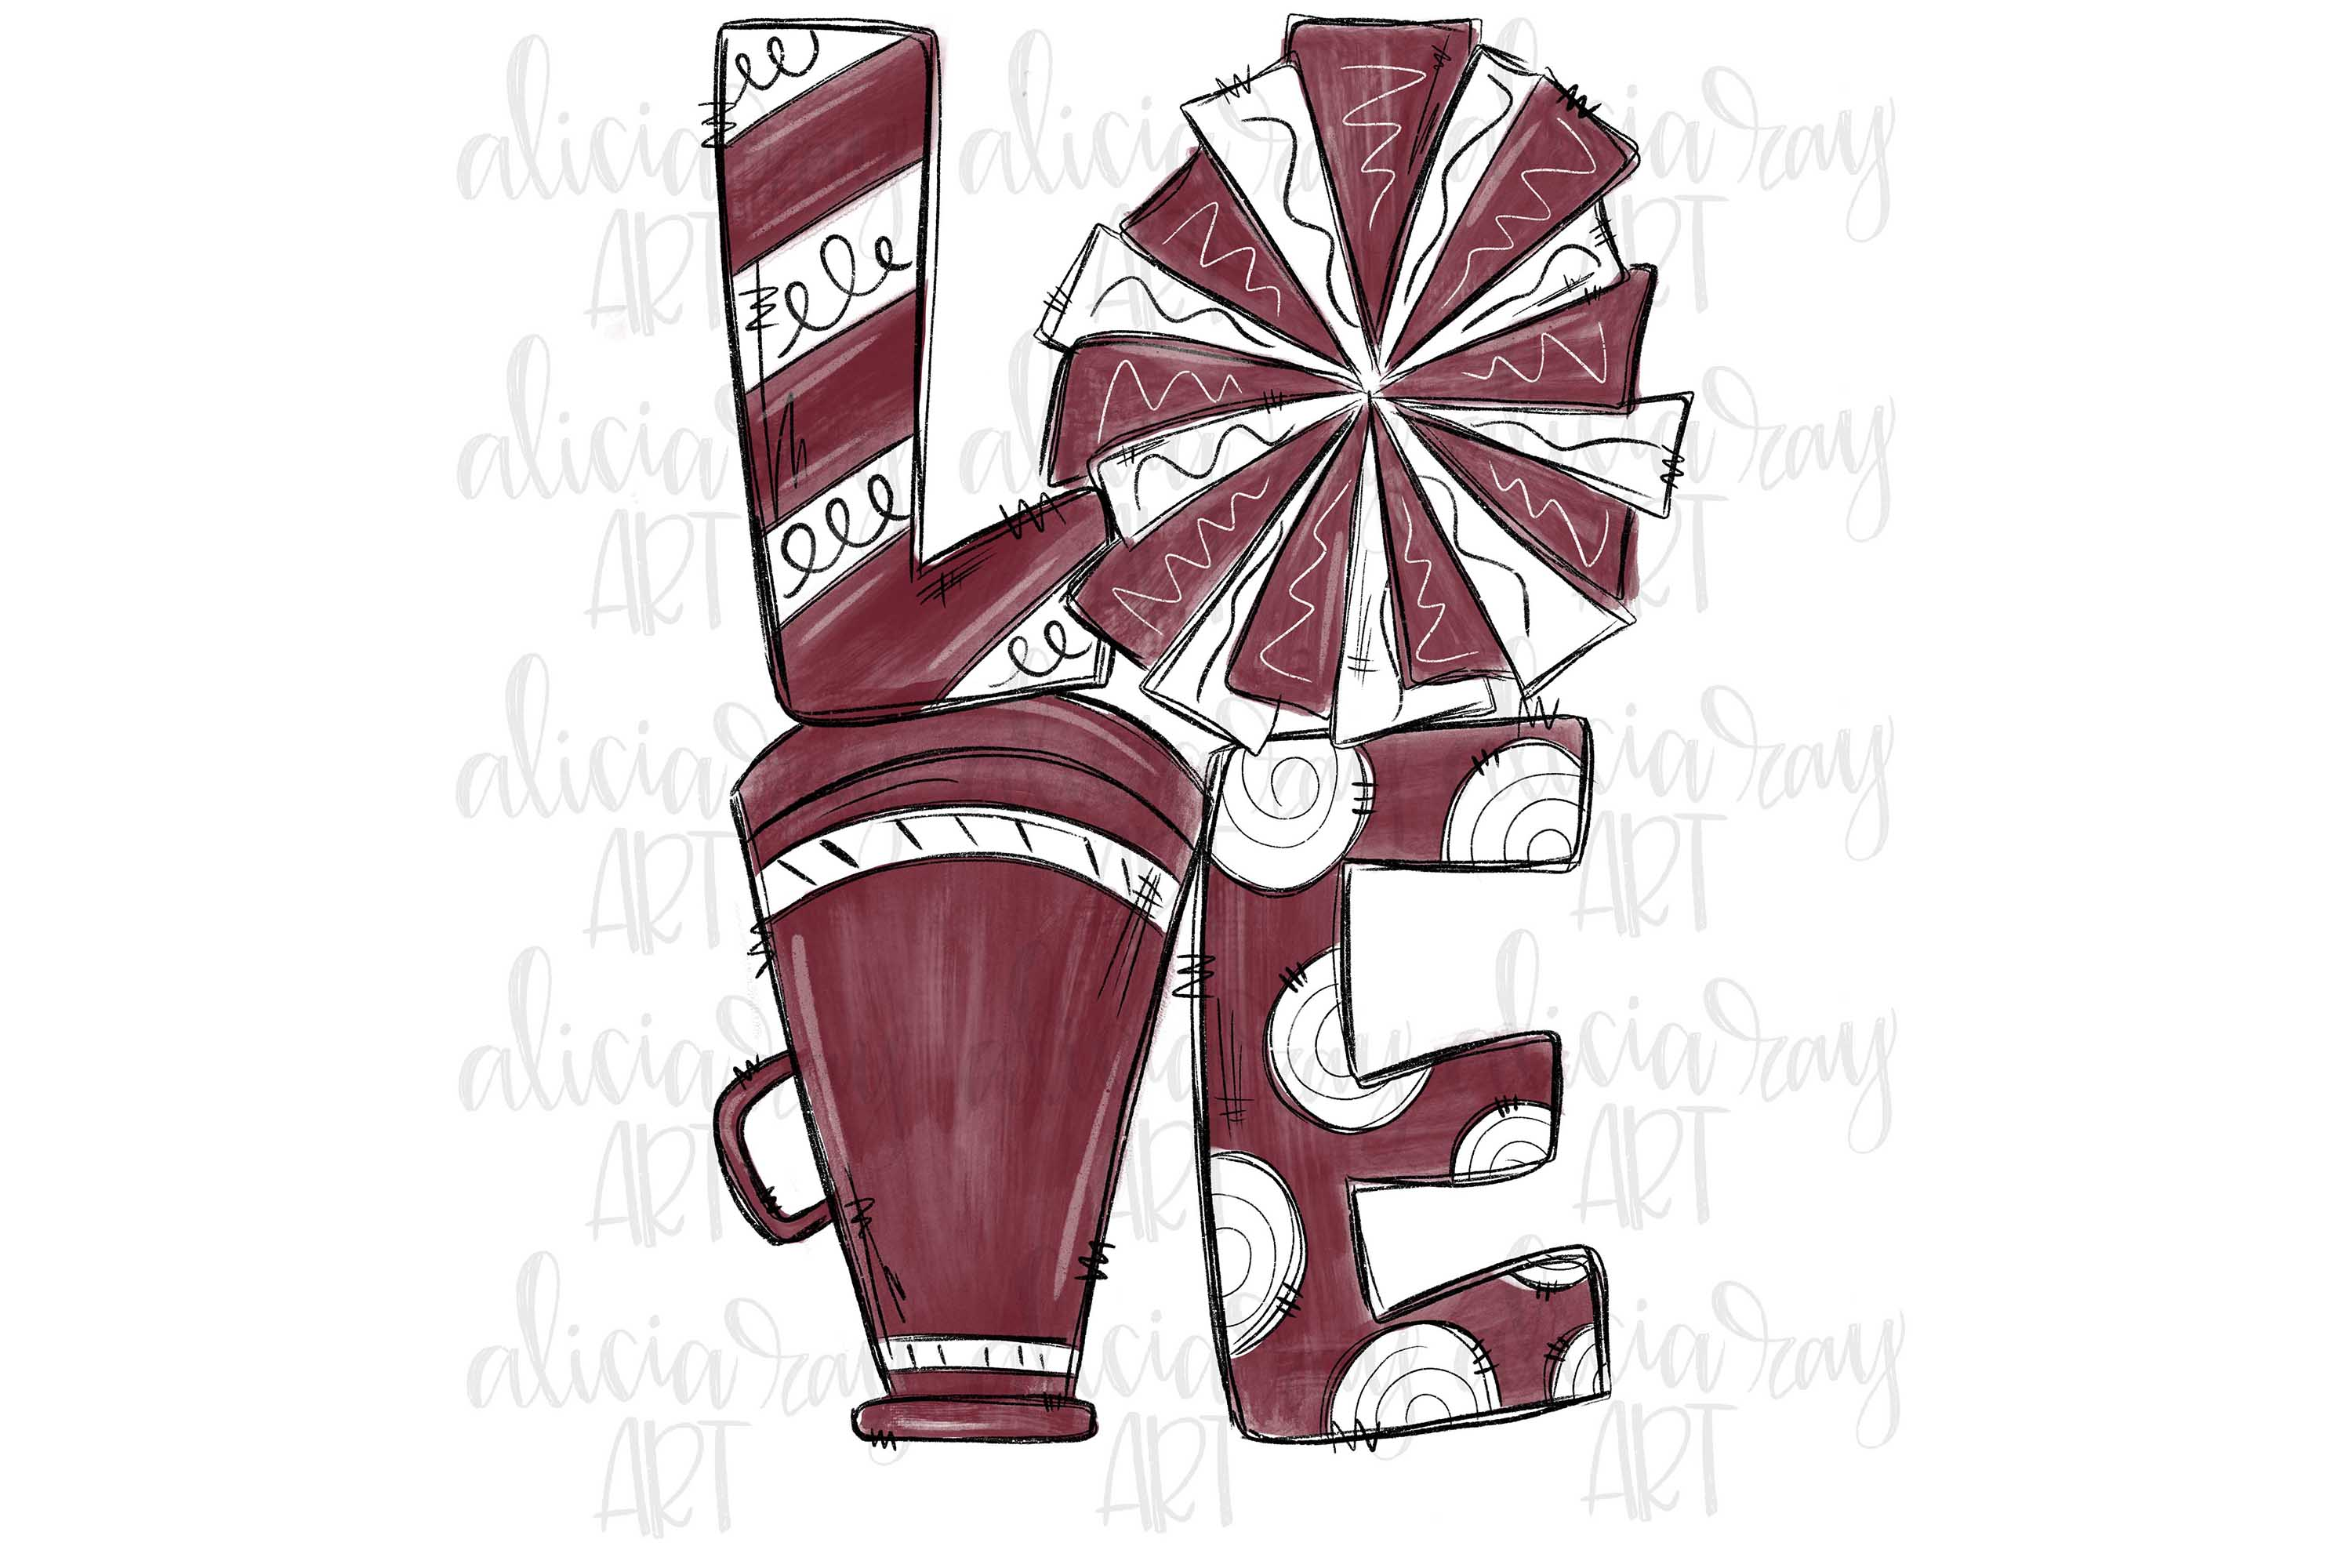 Cheer Love Maroon and White example image 1